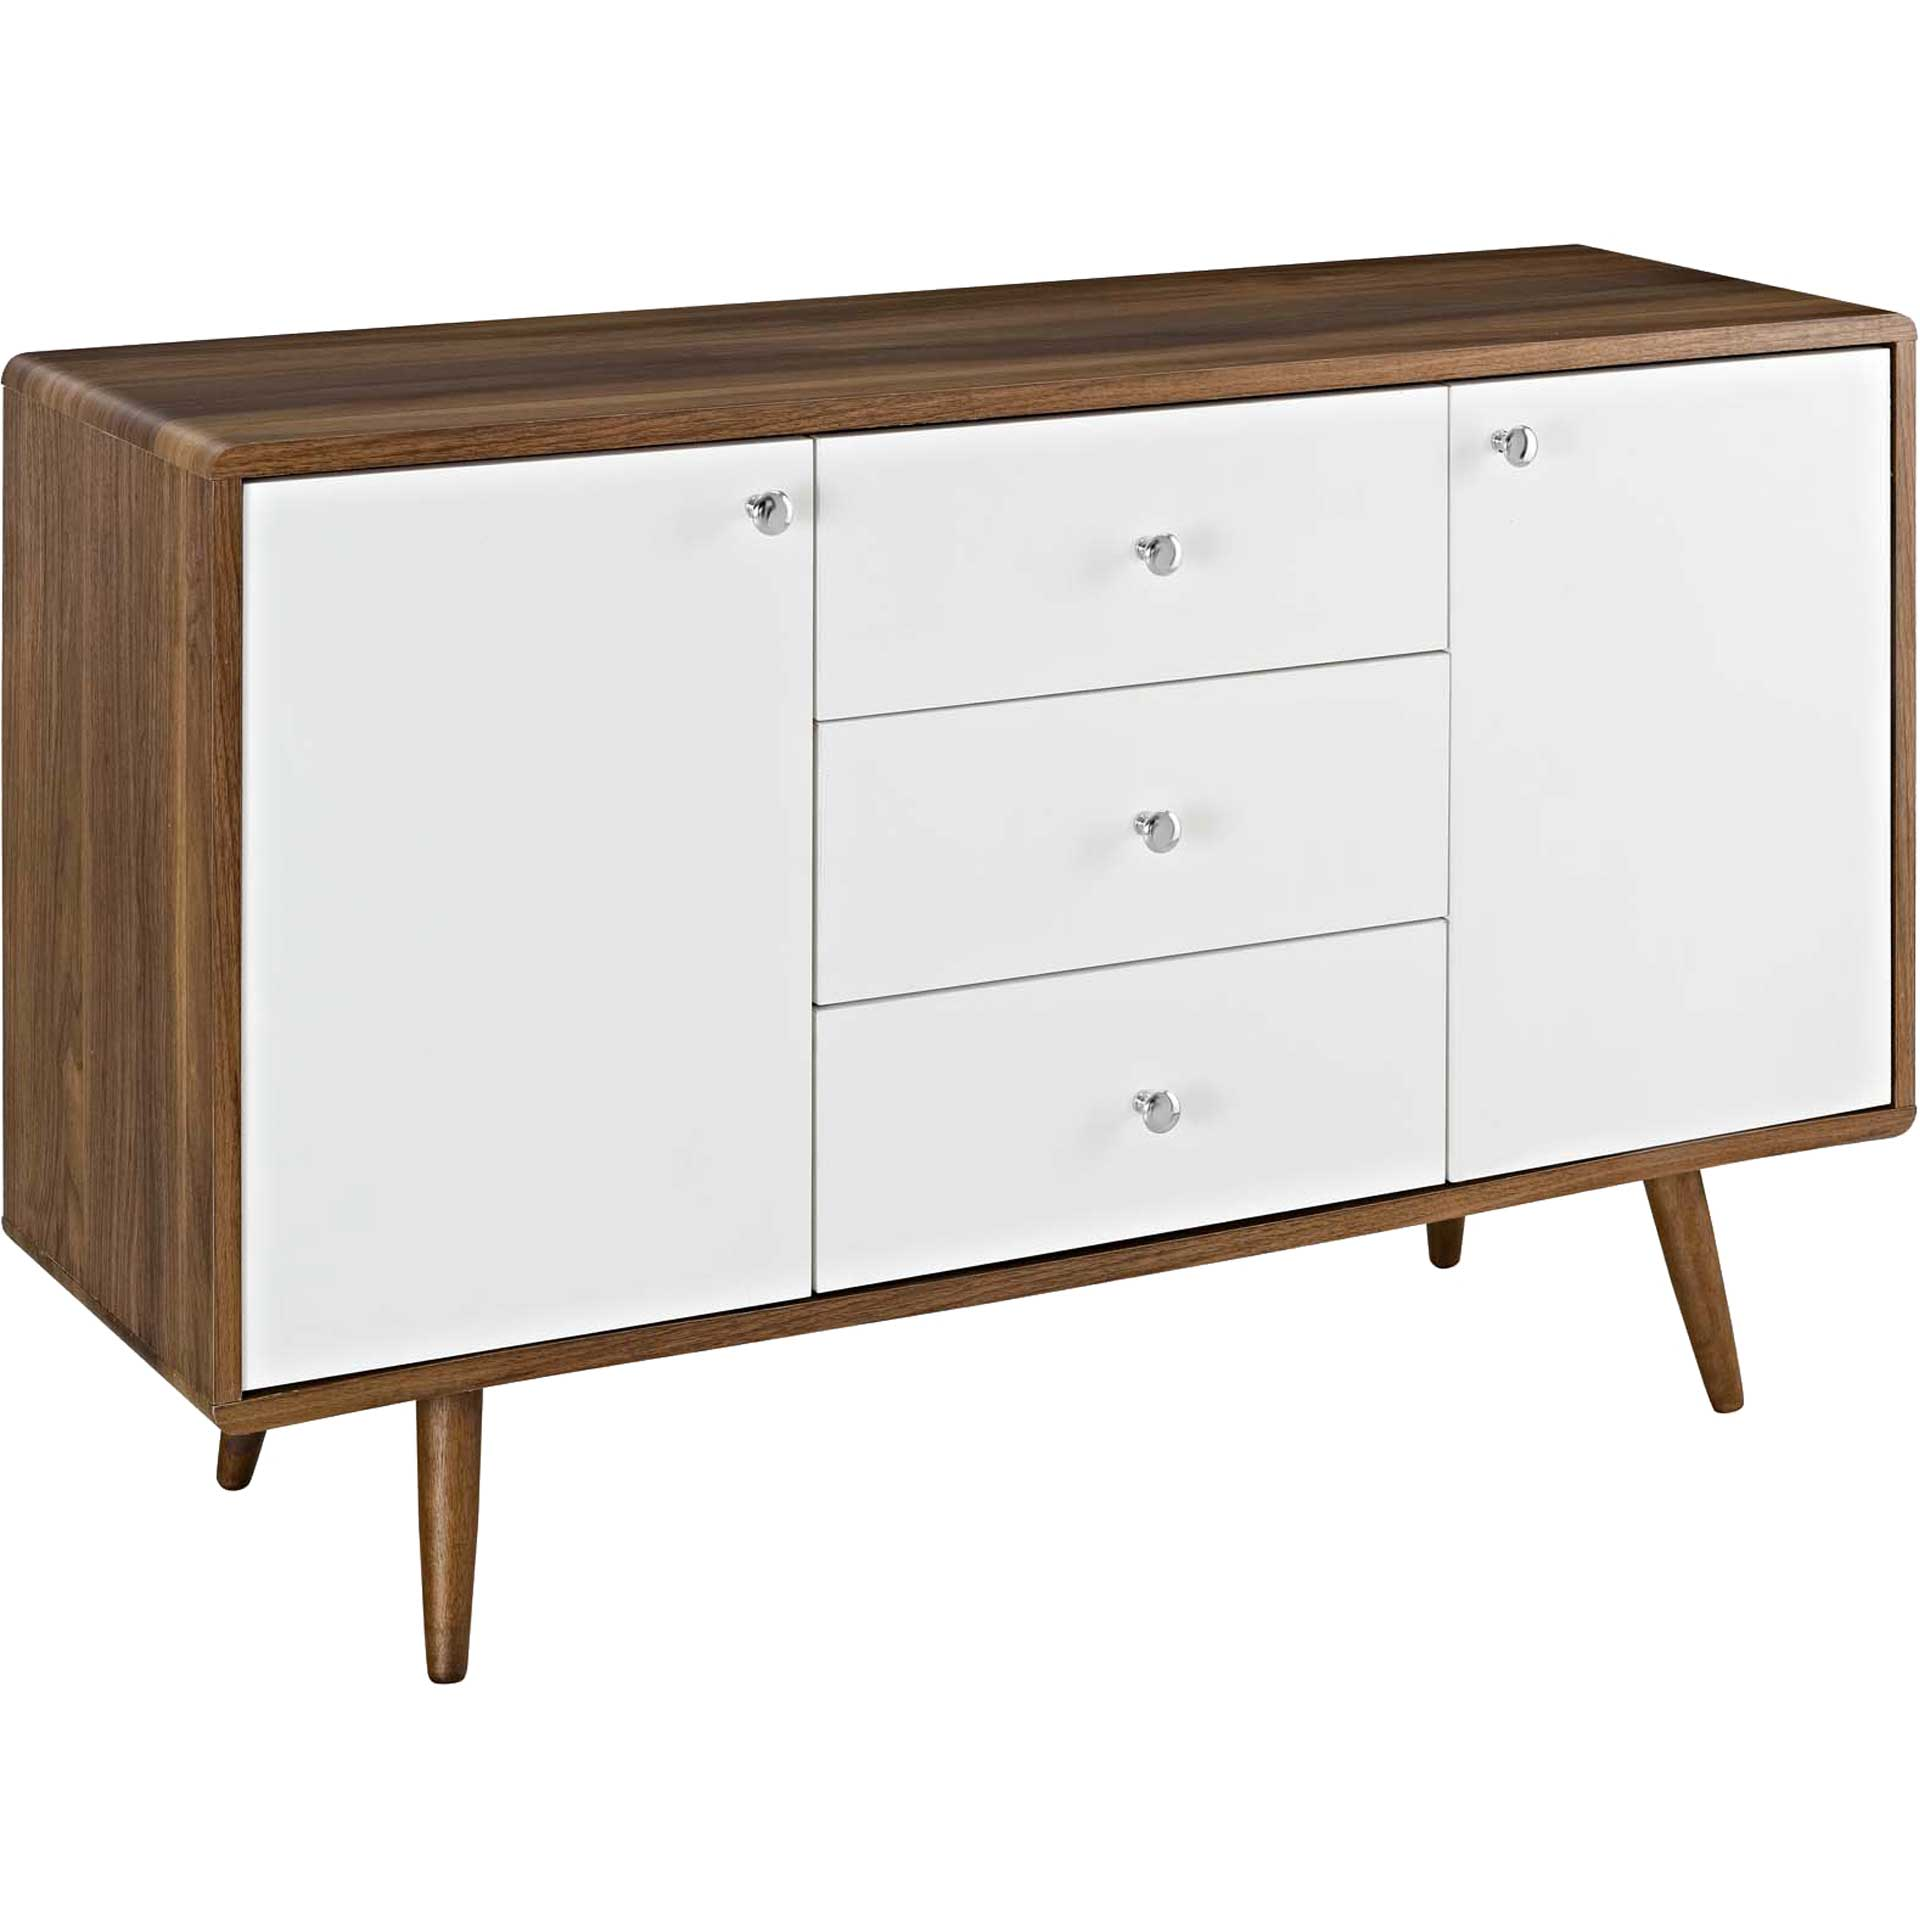 Tiffin Sideboard Walnut/White